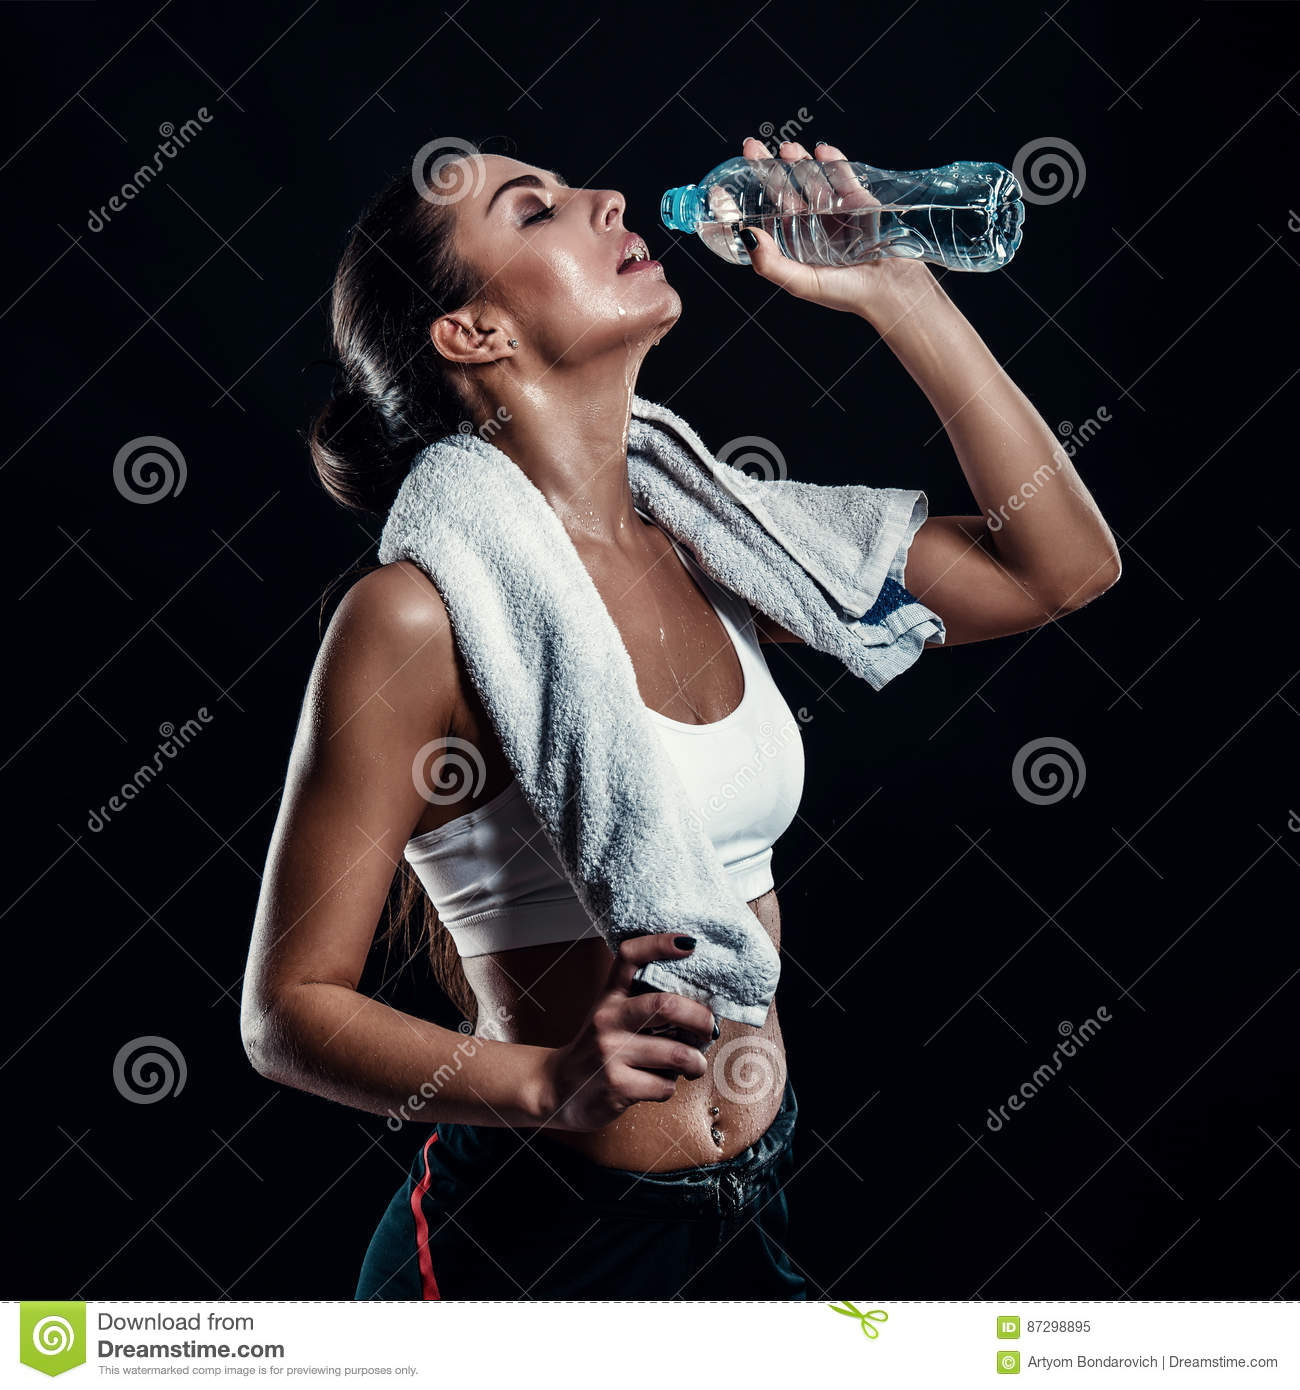 Attractive athletic young woman with perfect body drinking water from a bottle with towel around her neck against black background